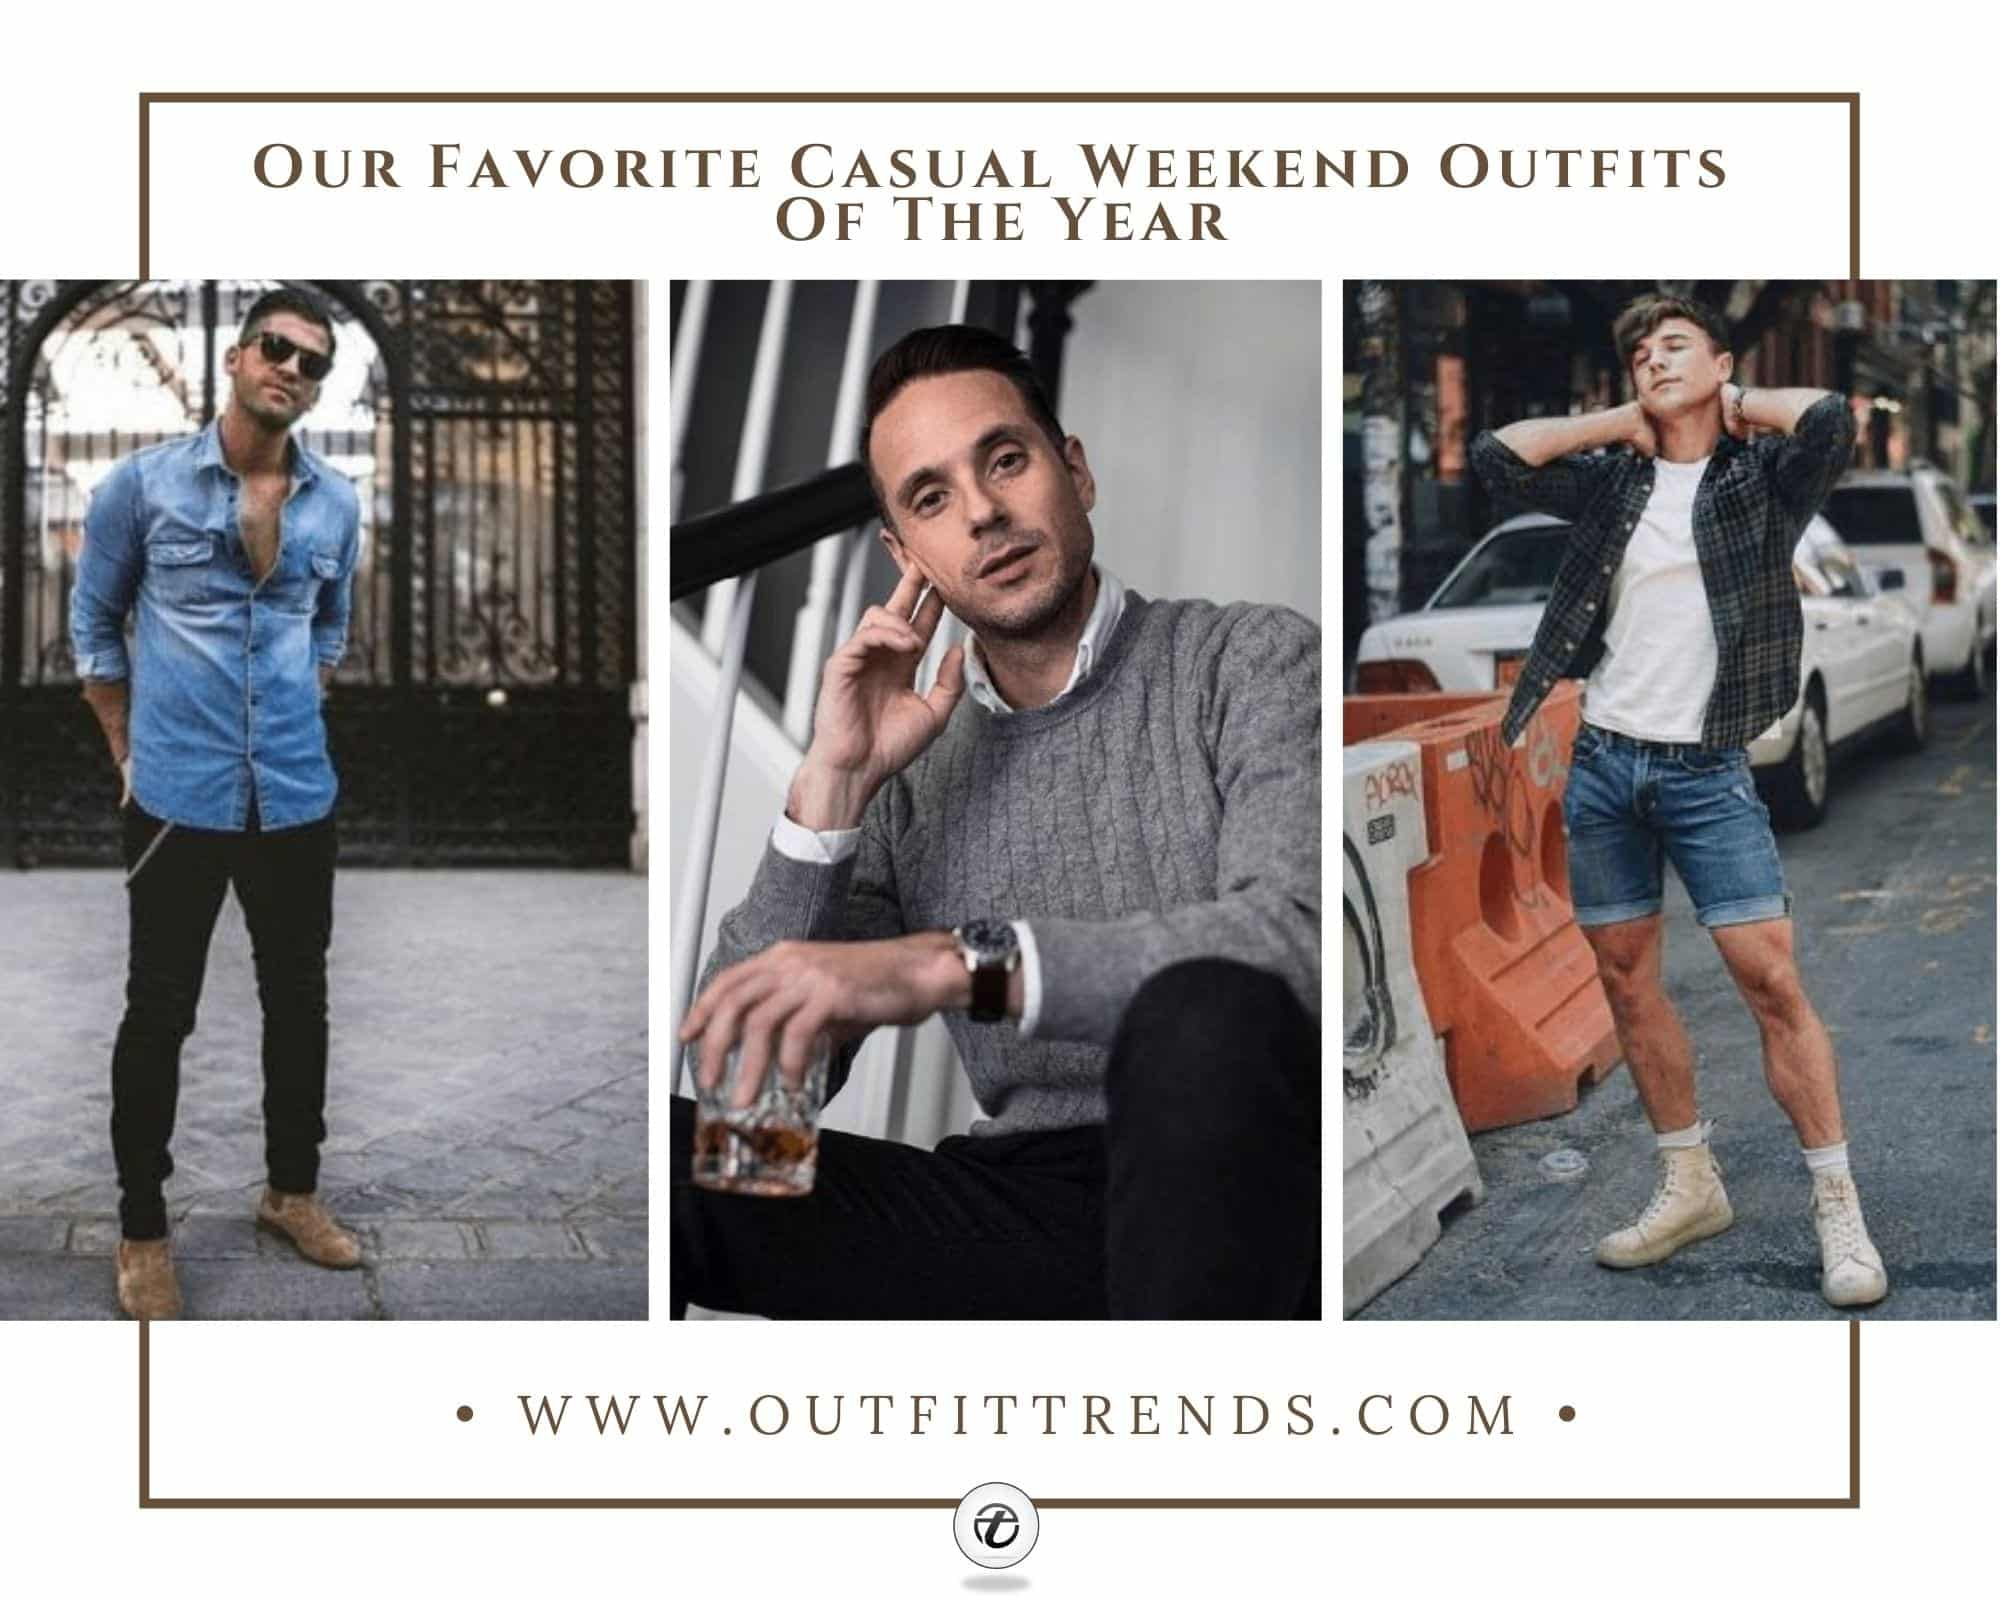 Top 20 Weekend Outfits For Men Trending in 2020